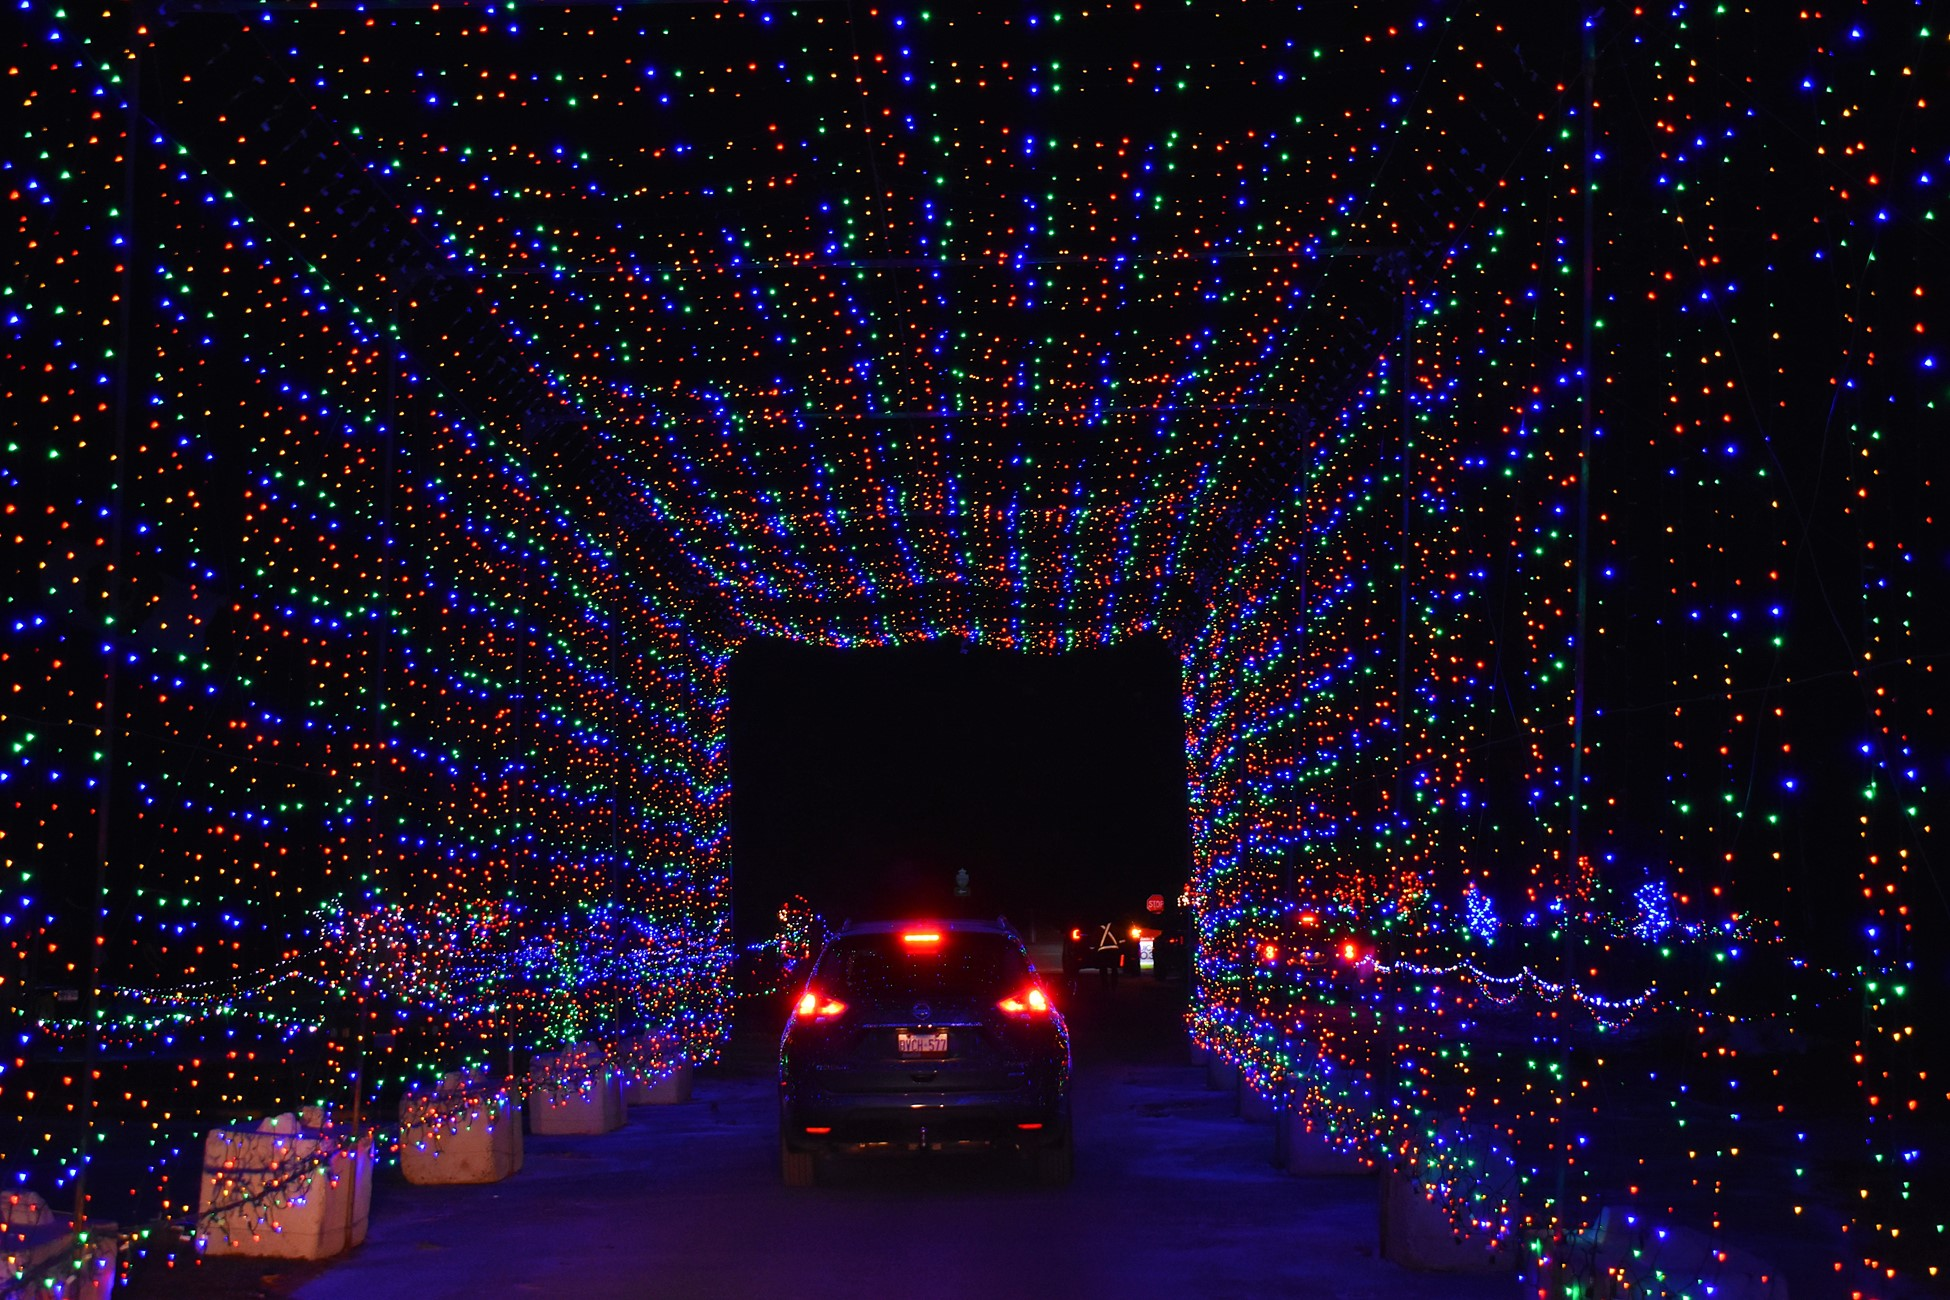 magic of lights brightens up the night